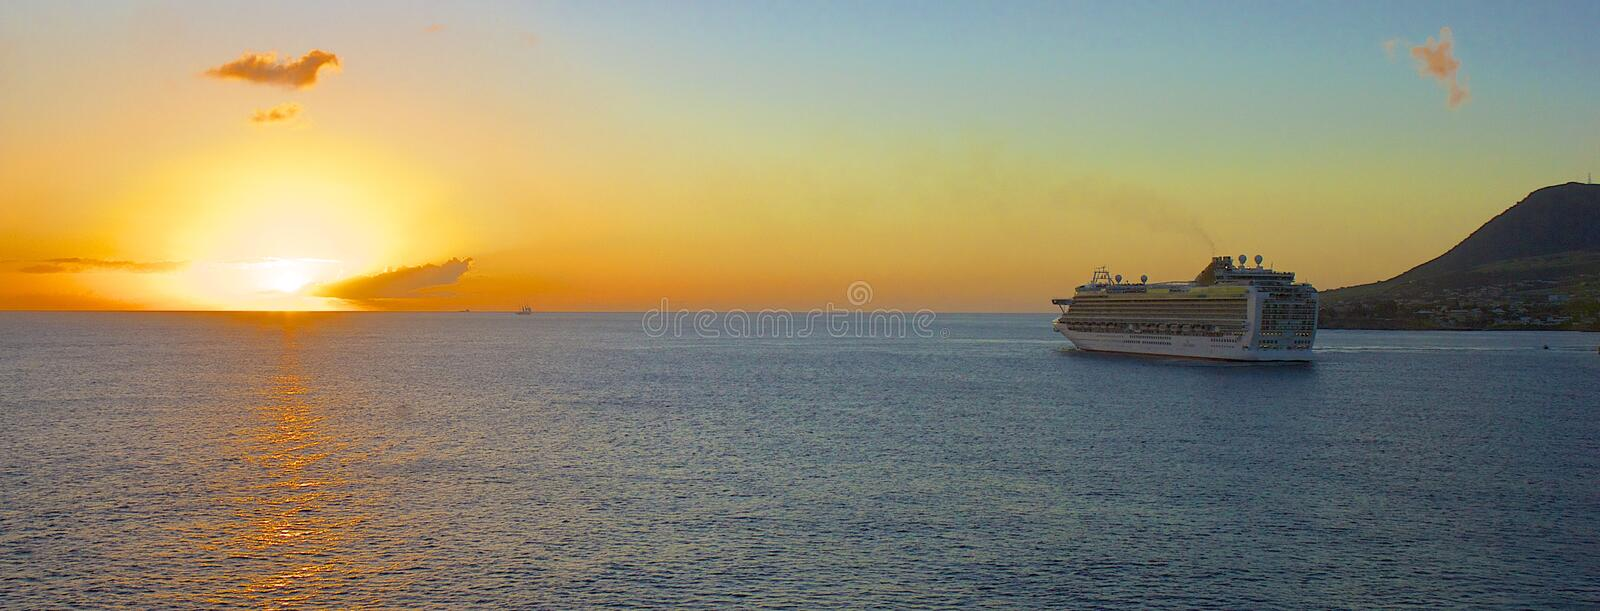 Cruise ship on a sunset, St Kitts. Cruise ship leaving St Kitts on the sunset royalty free stock photos